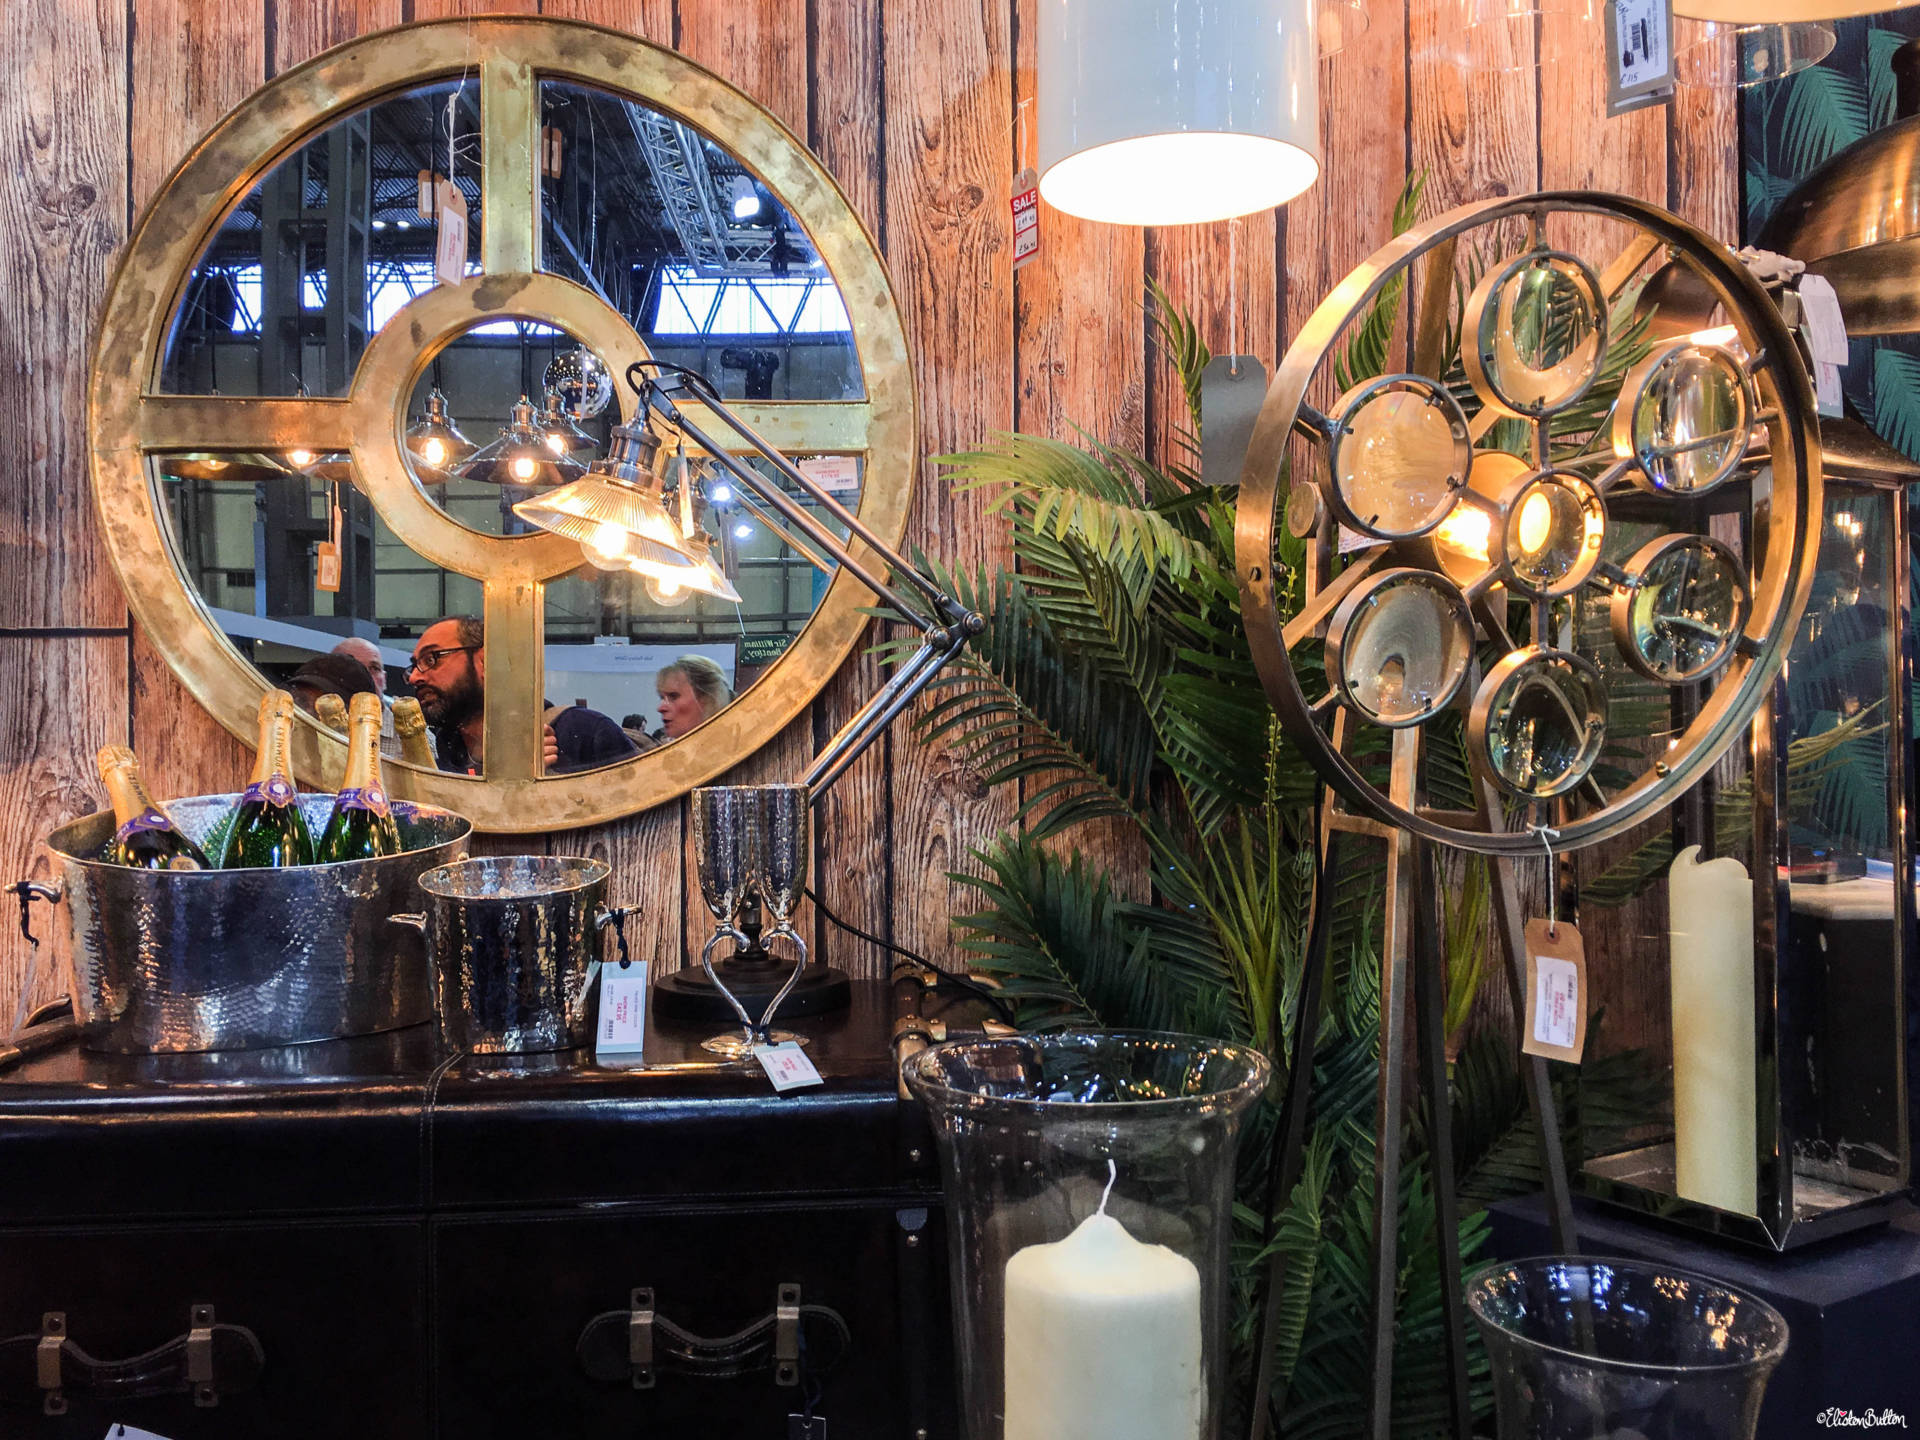 Beautiful Lighting and Home Decor from Culinary Concepts at Grand Designs Live 2017 with Eliston Button - Grand Designs Live 2017 – Part One at www.elistonbutton.com - Eliston Button - That Crafty Kid – Art, Design, Craft & Adventure.